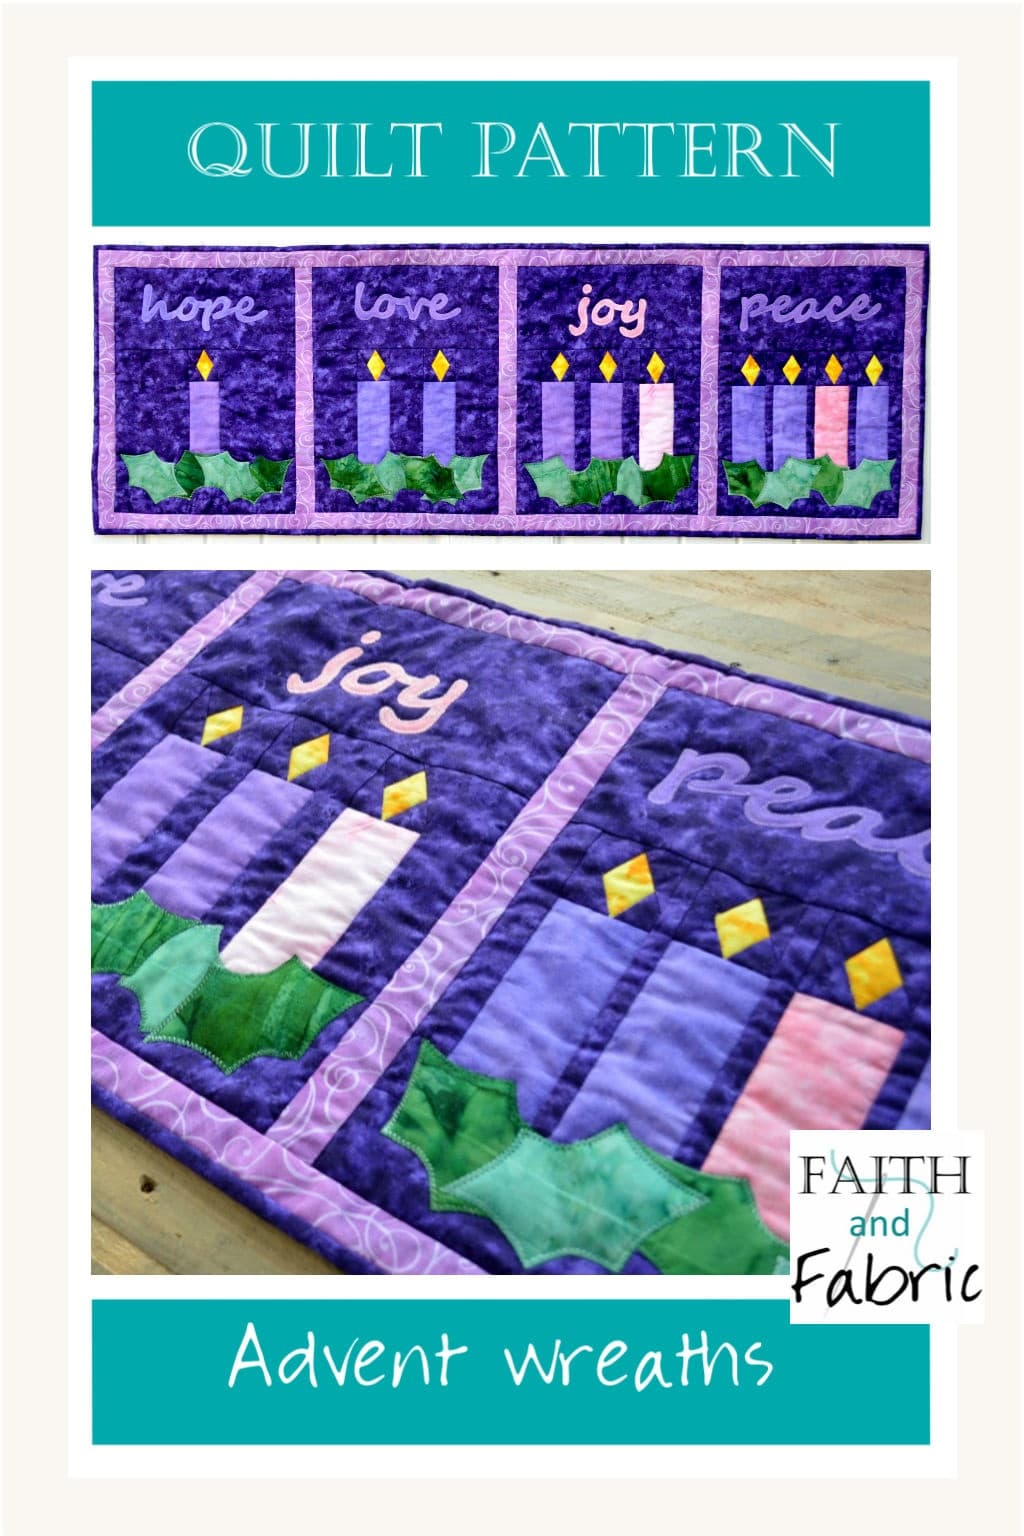 Celebrate the beauty of Advent with this versatile quilt! The four panels can be arranged to be either a table runner or wall hanging. Created by Faith and Fabric.